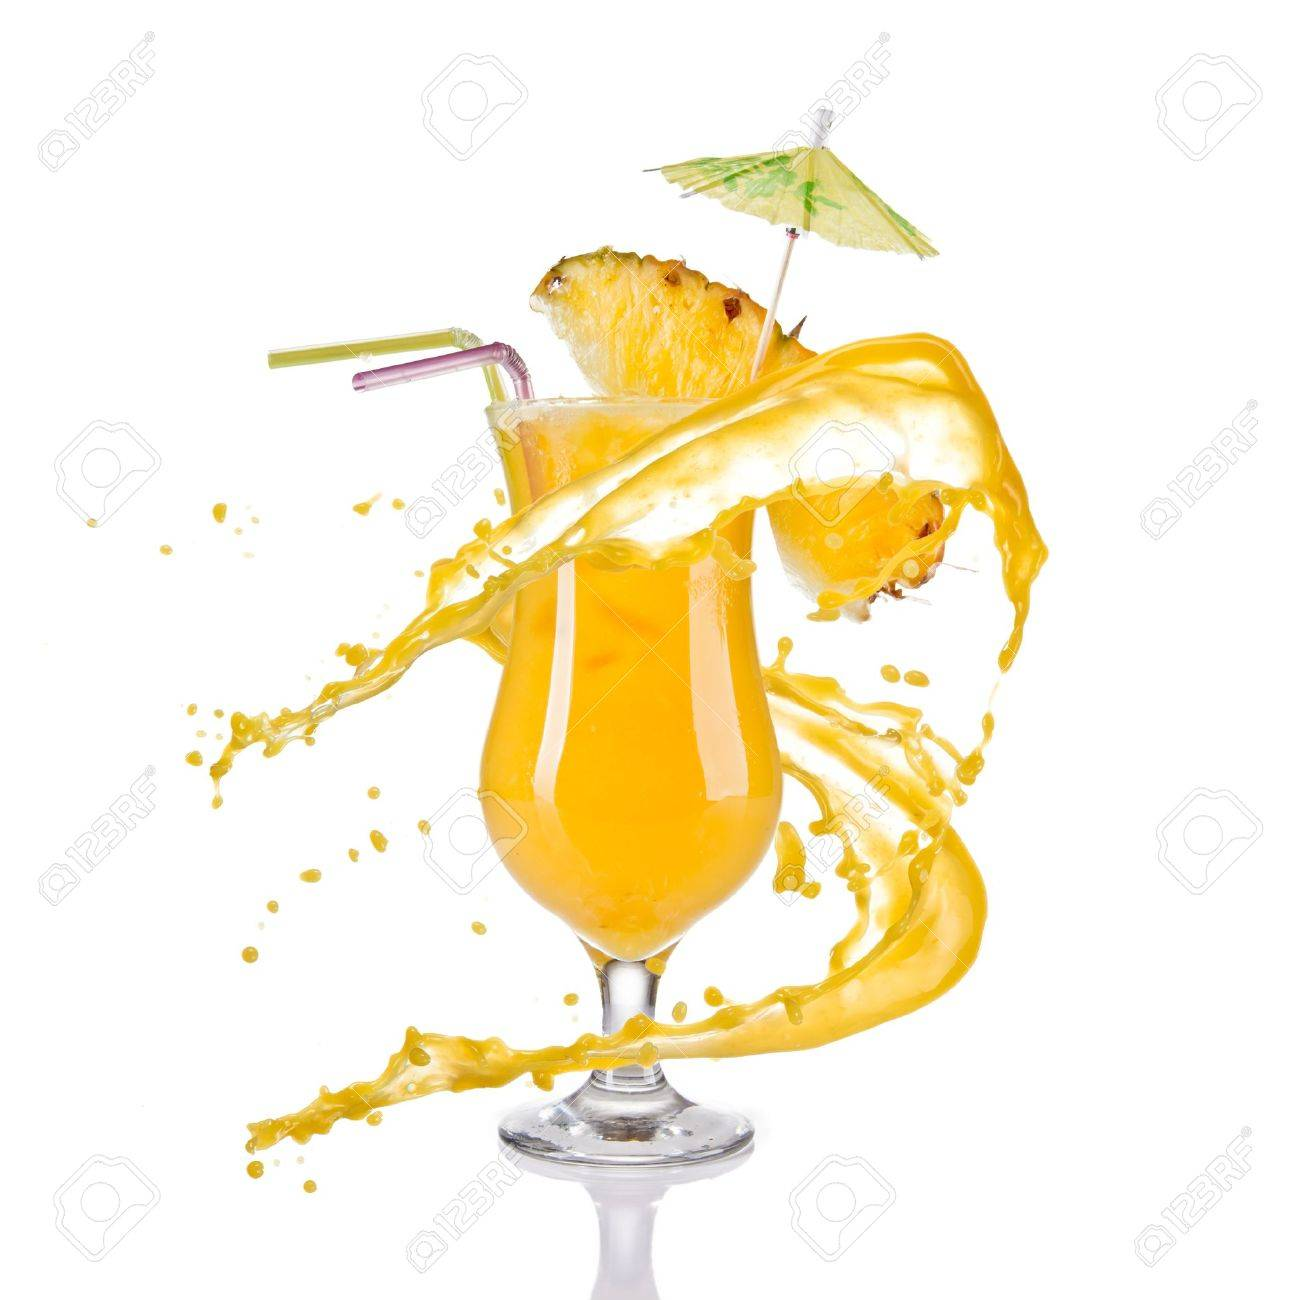 Fresh pineapple cocktail with juice splash, isolated on white background - 14078693